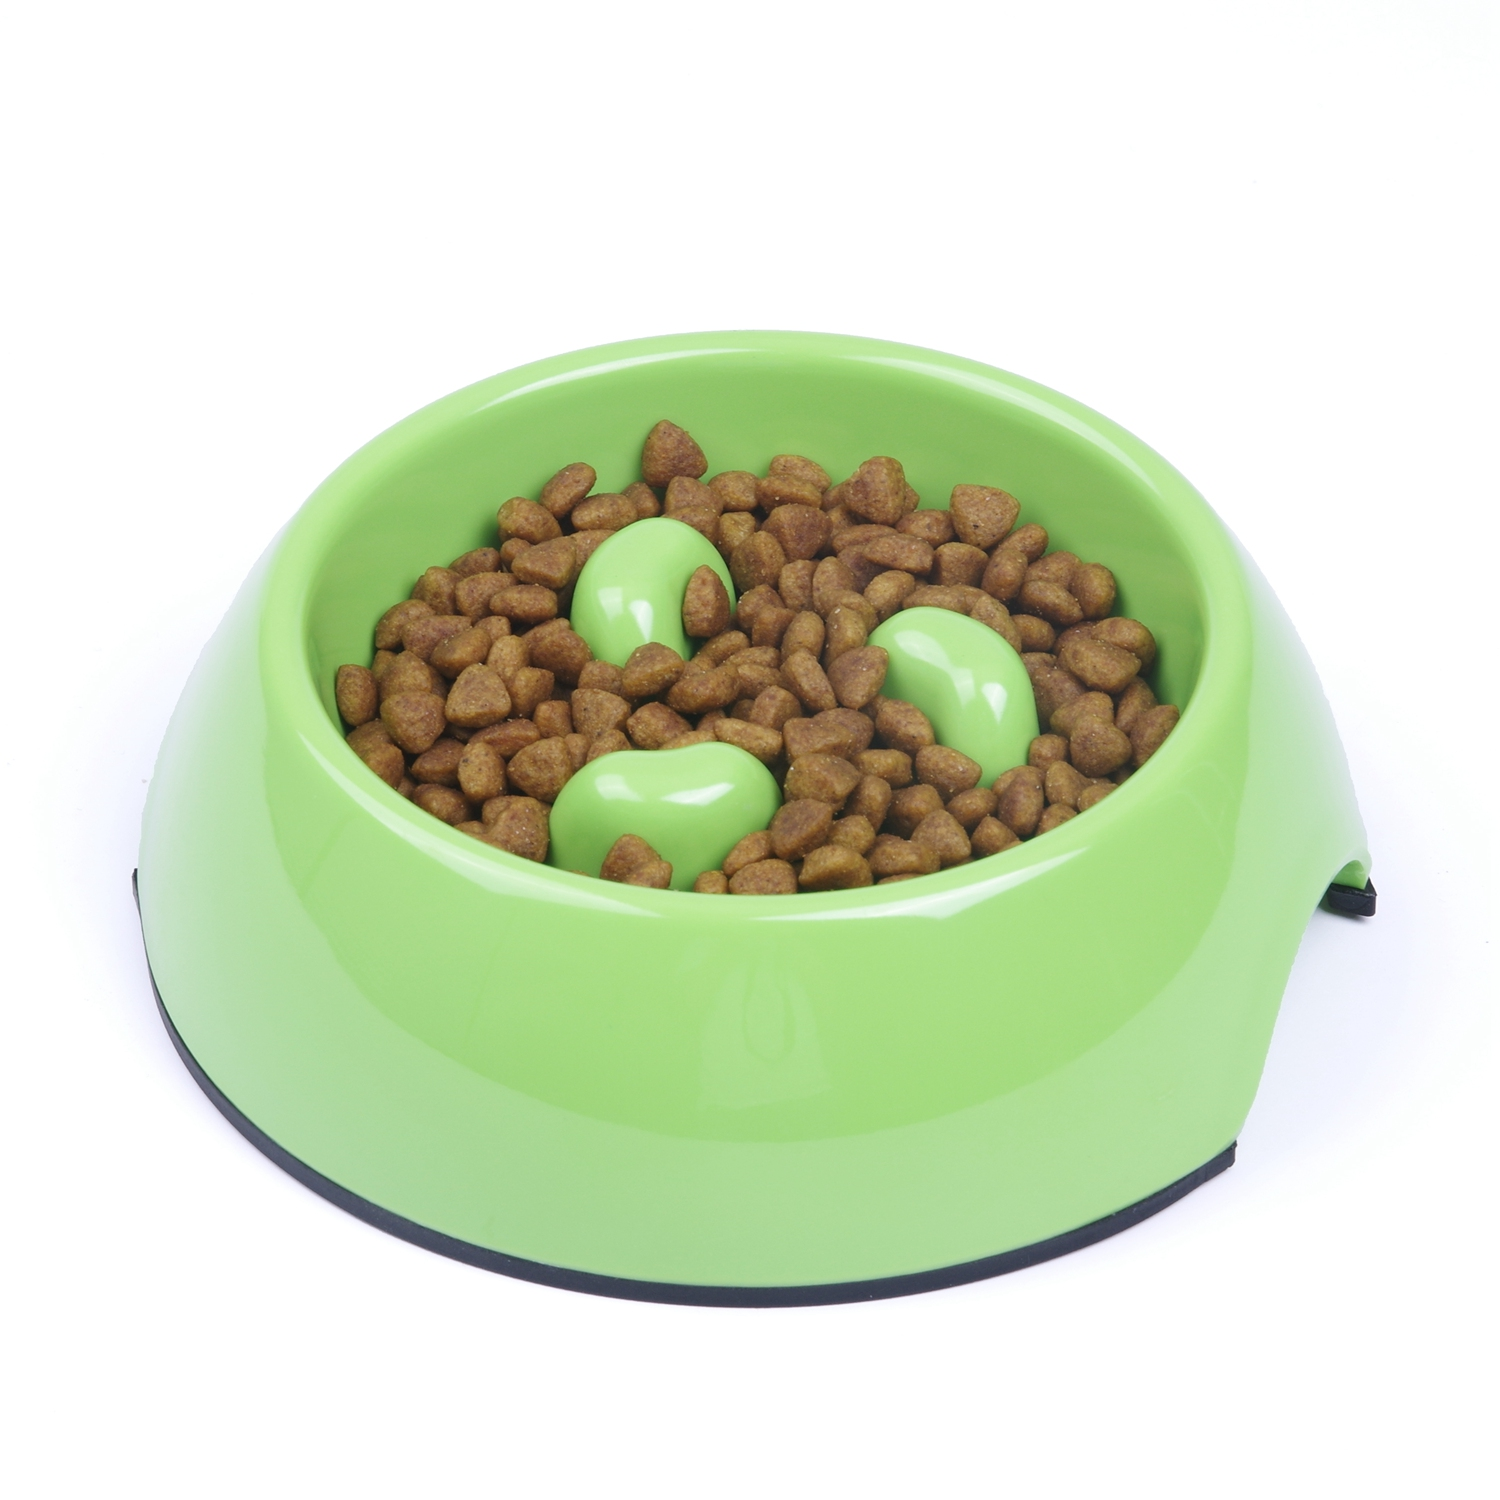 Dog Food Bowl To Slow Down Eating